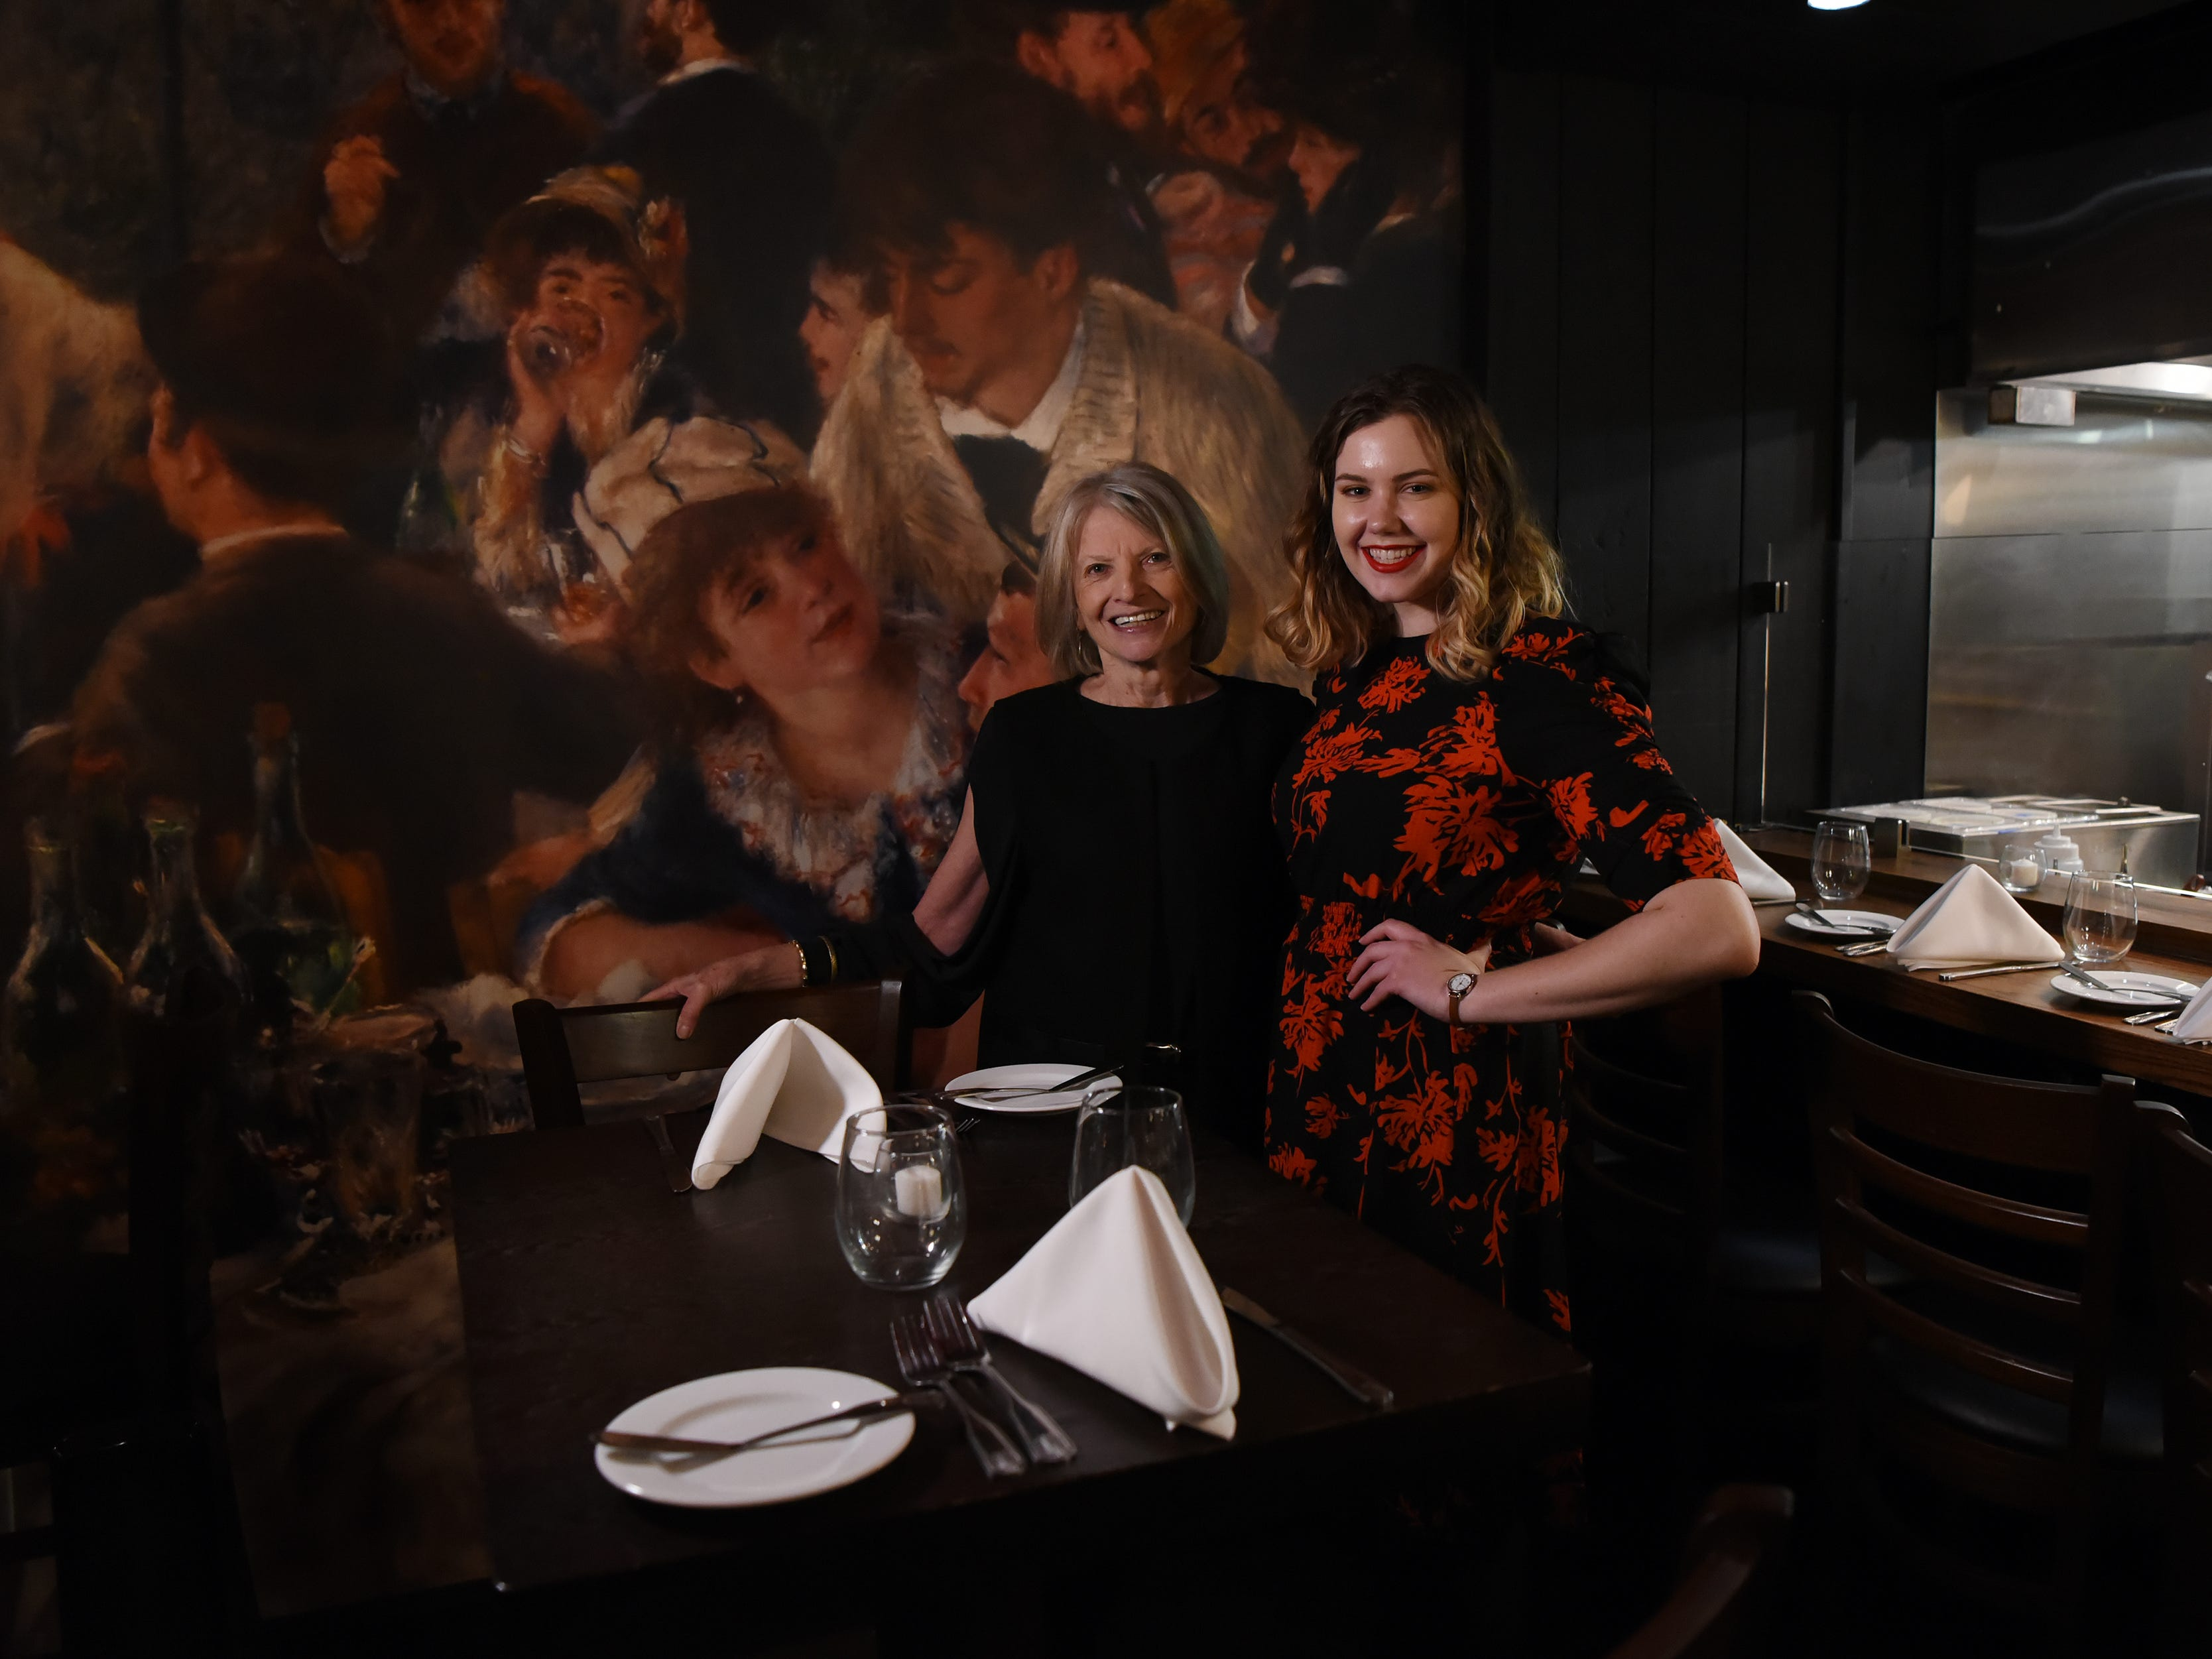 Food editor Esther Davidowitz and food and dining reporter Rebecca King at the dinner with Esther at Technique, a French restaurant in Westwood on Thursday February 7, 2019.